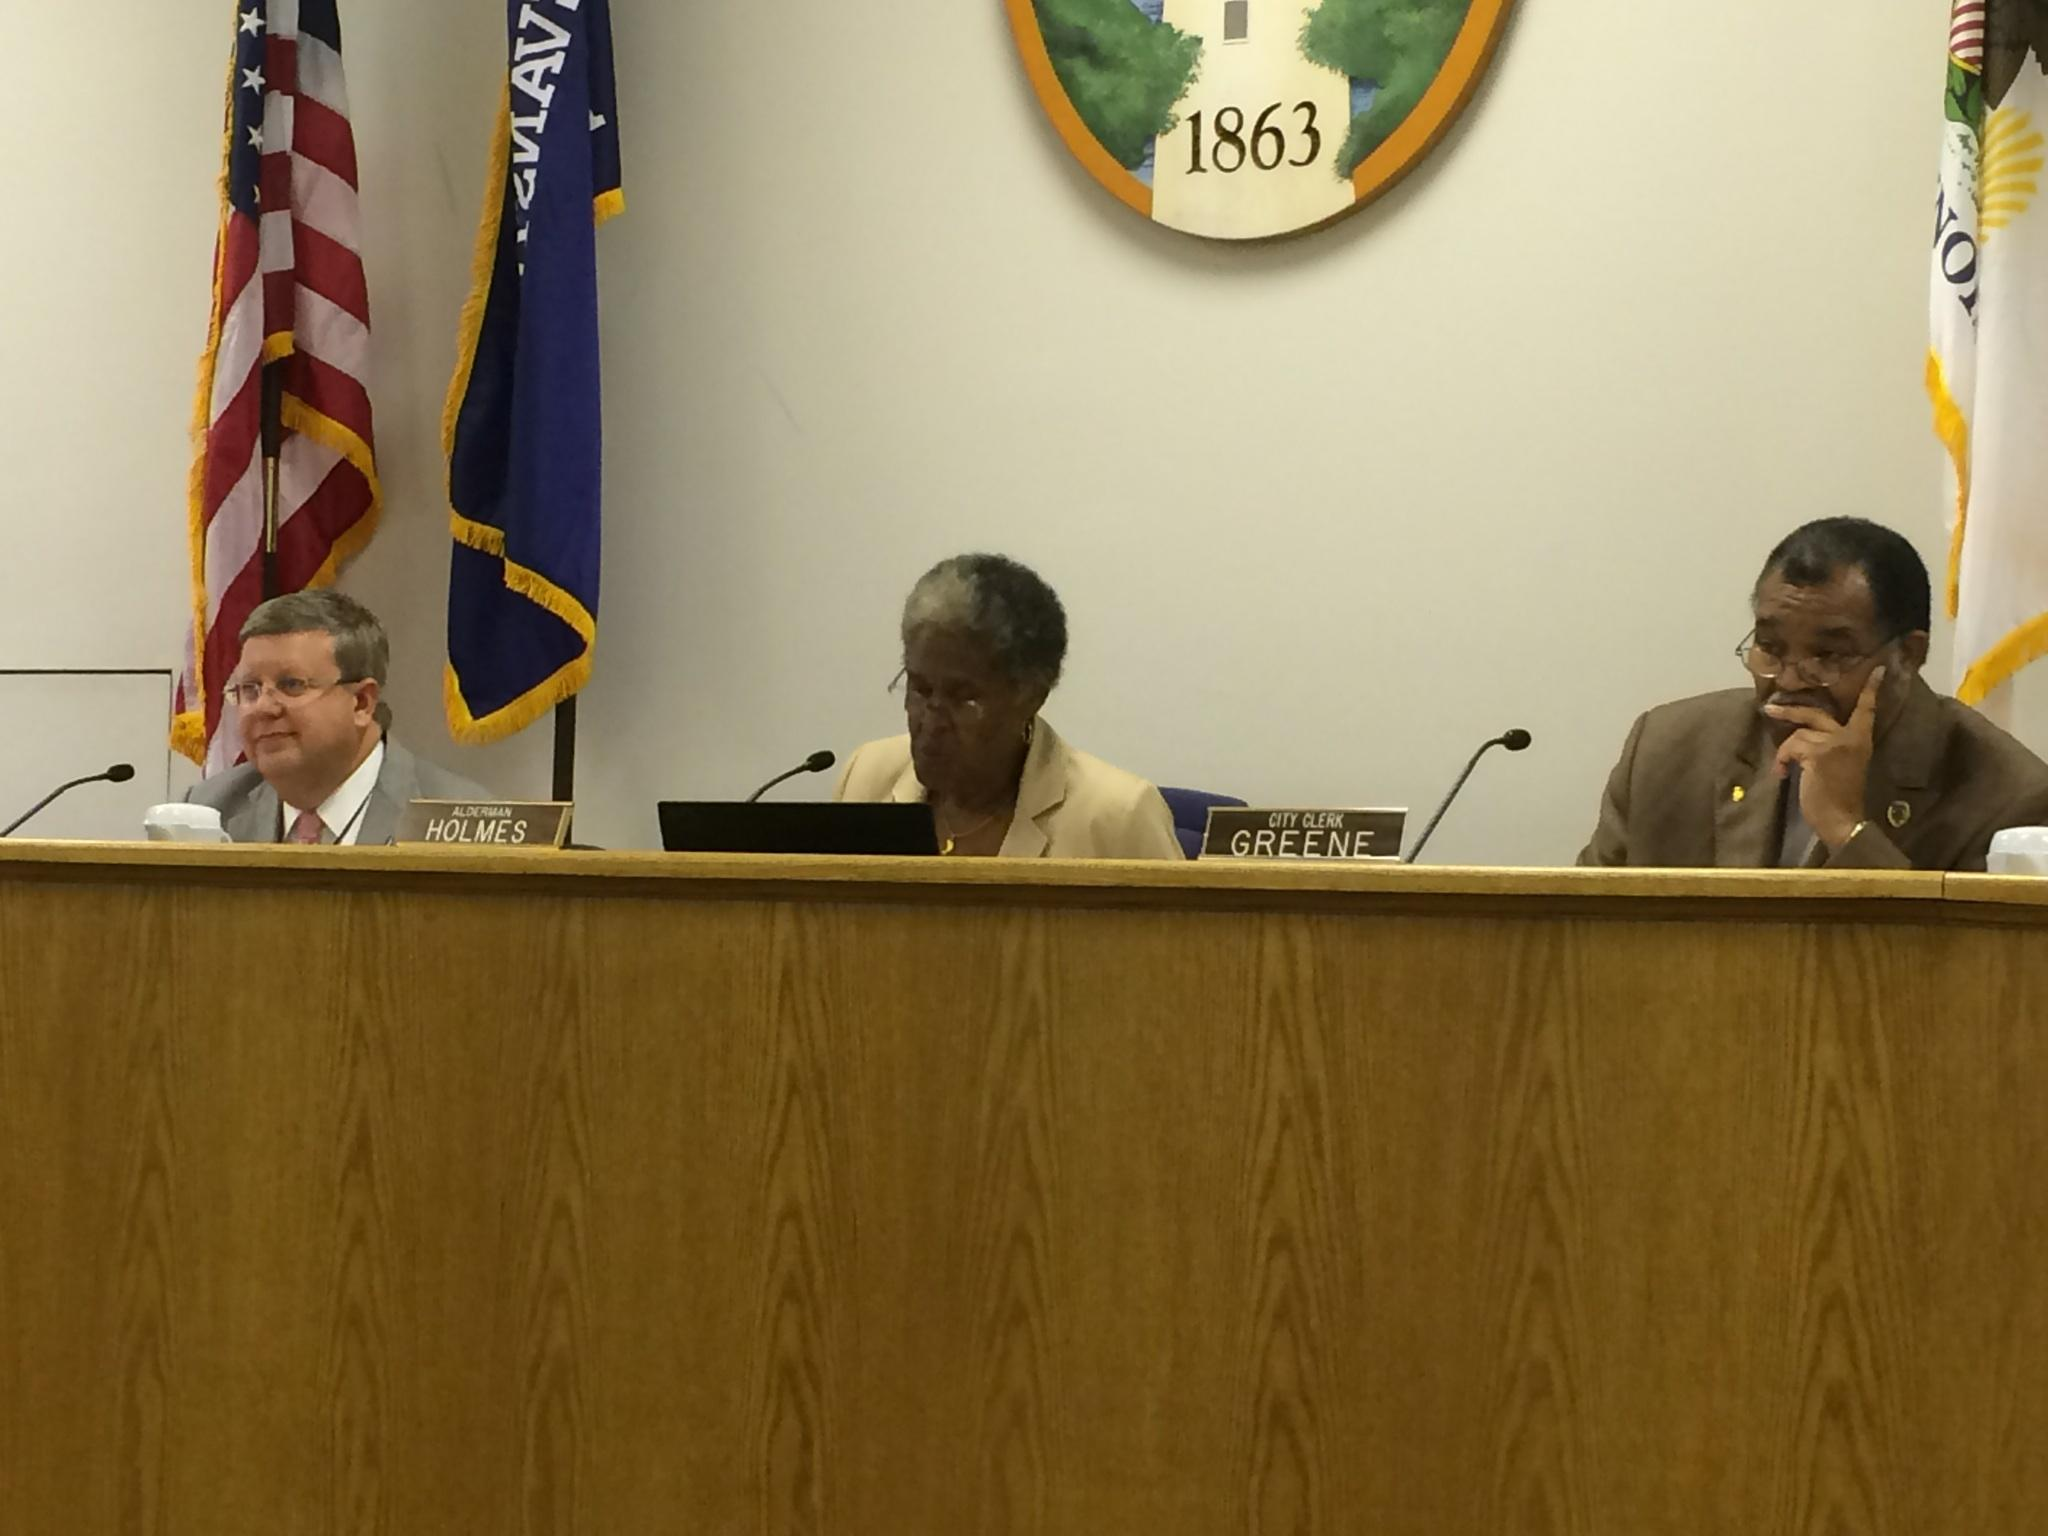 Ald. Delores Holmes (5th) presided over the City Council meeting Monday in Mayor Elizabeth Tisdahl's absence.